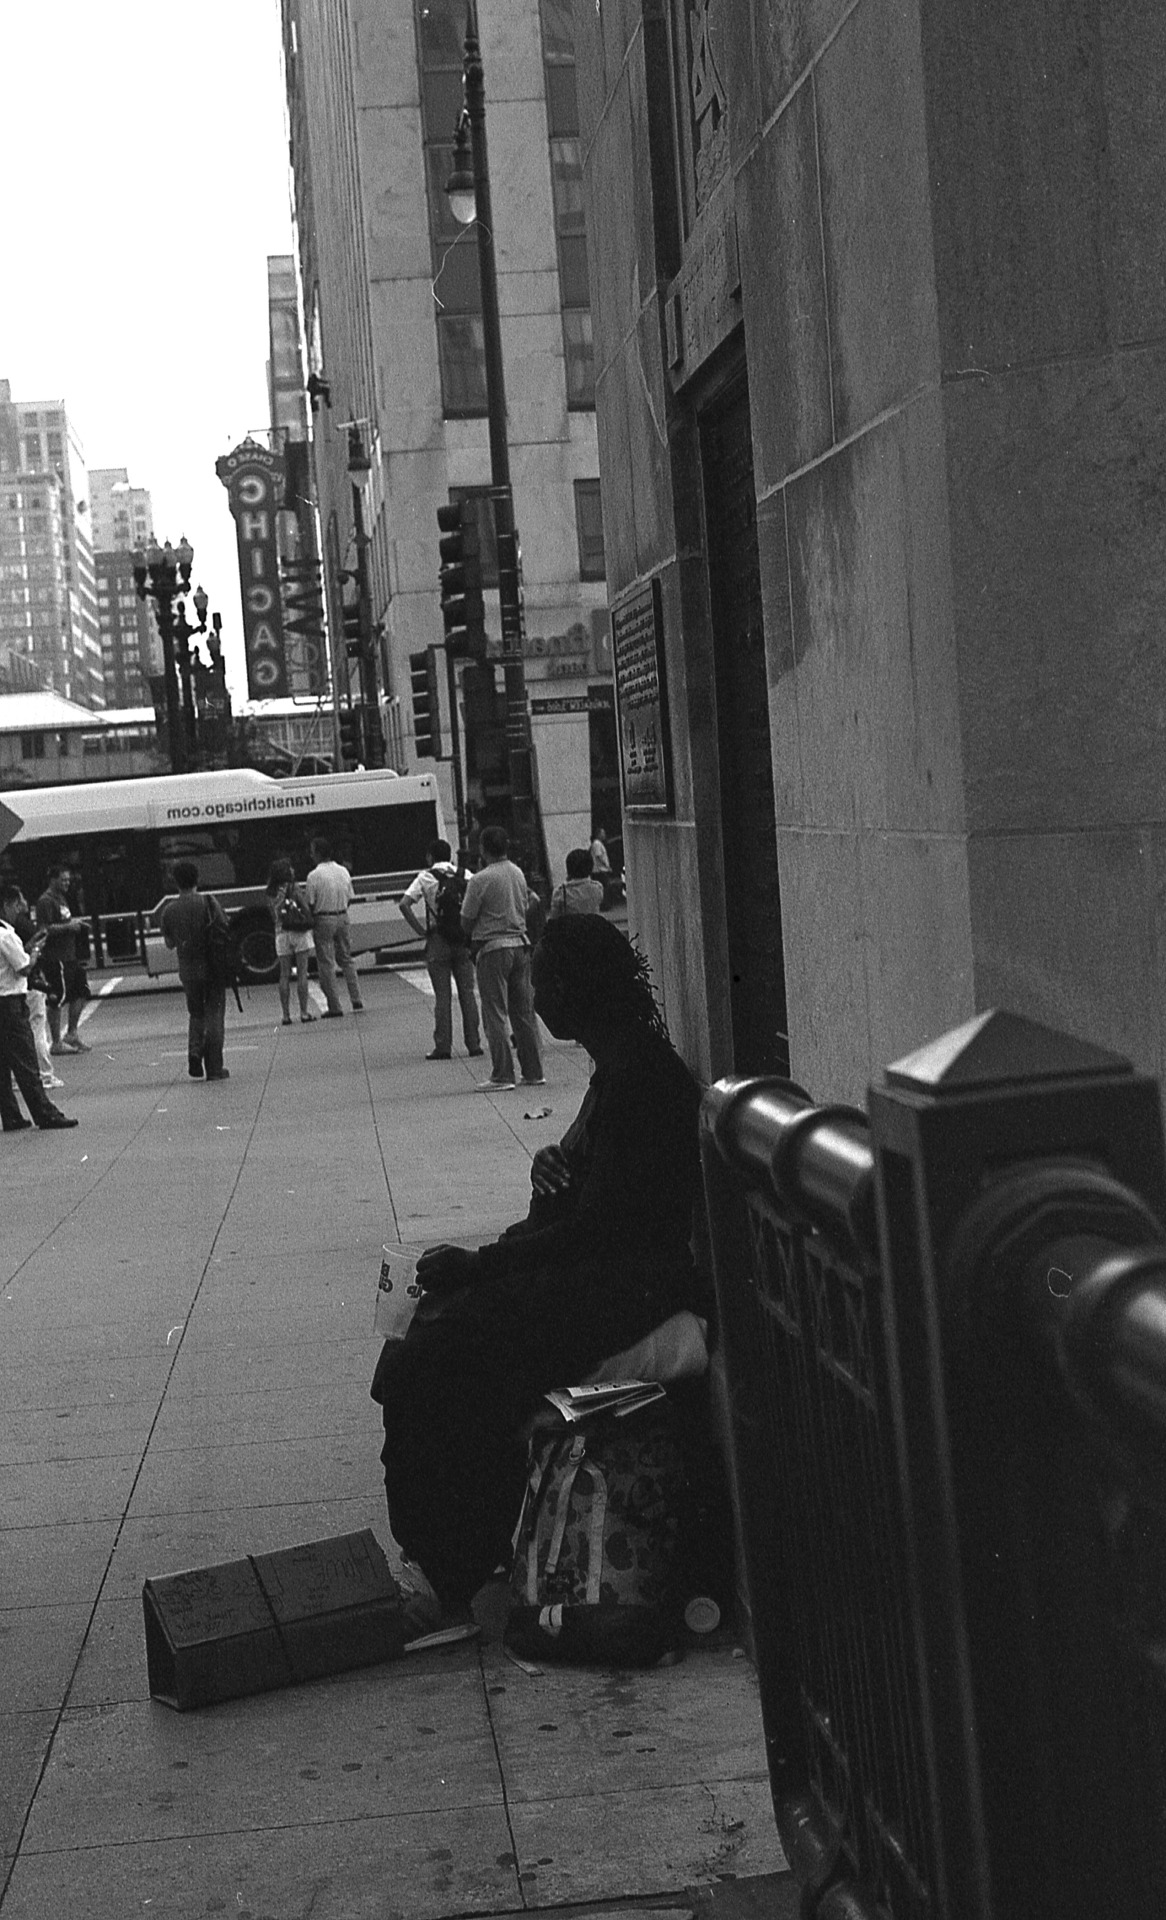 Untitled, Chicago 2013